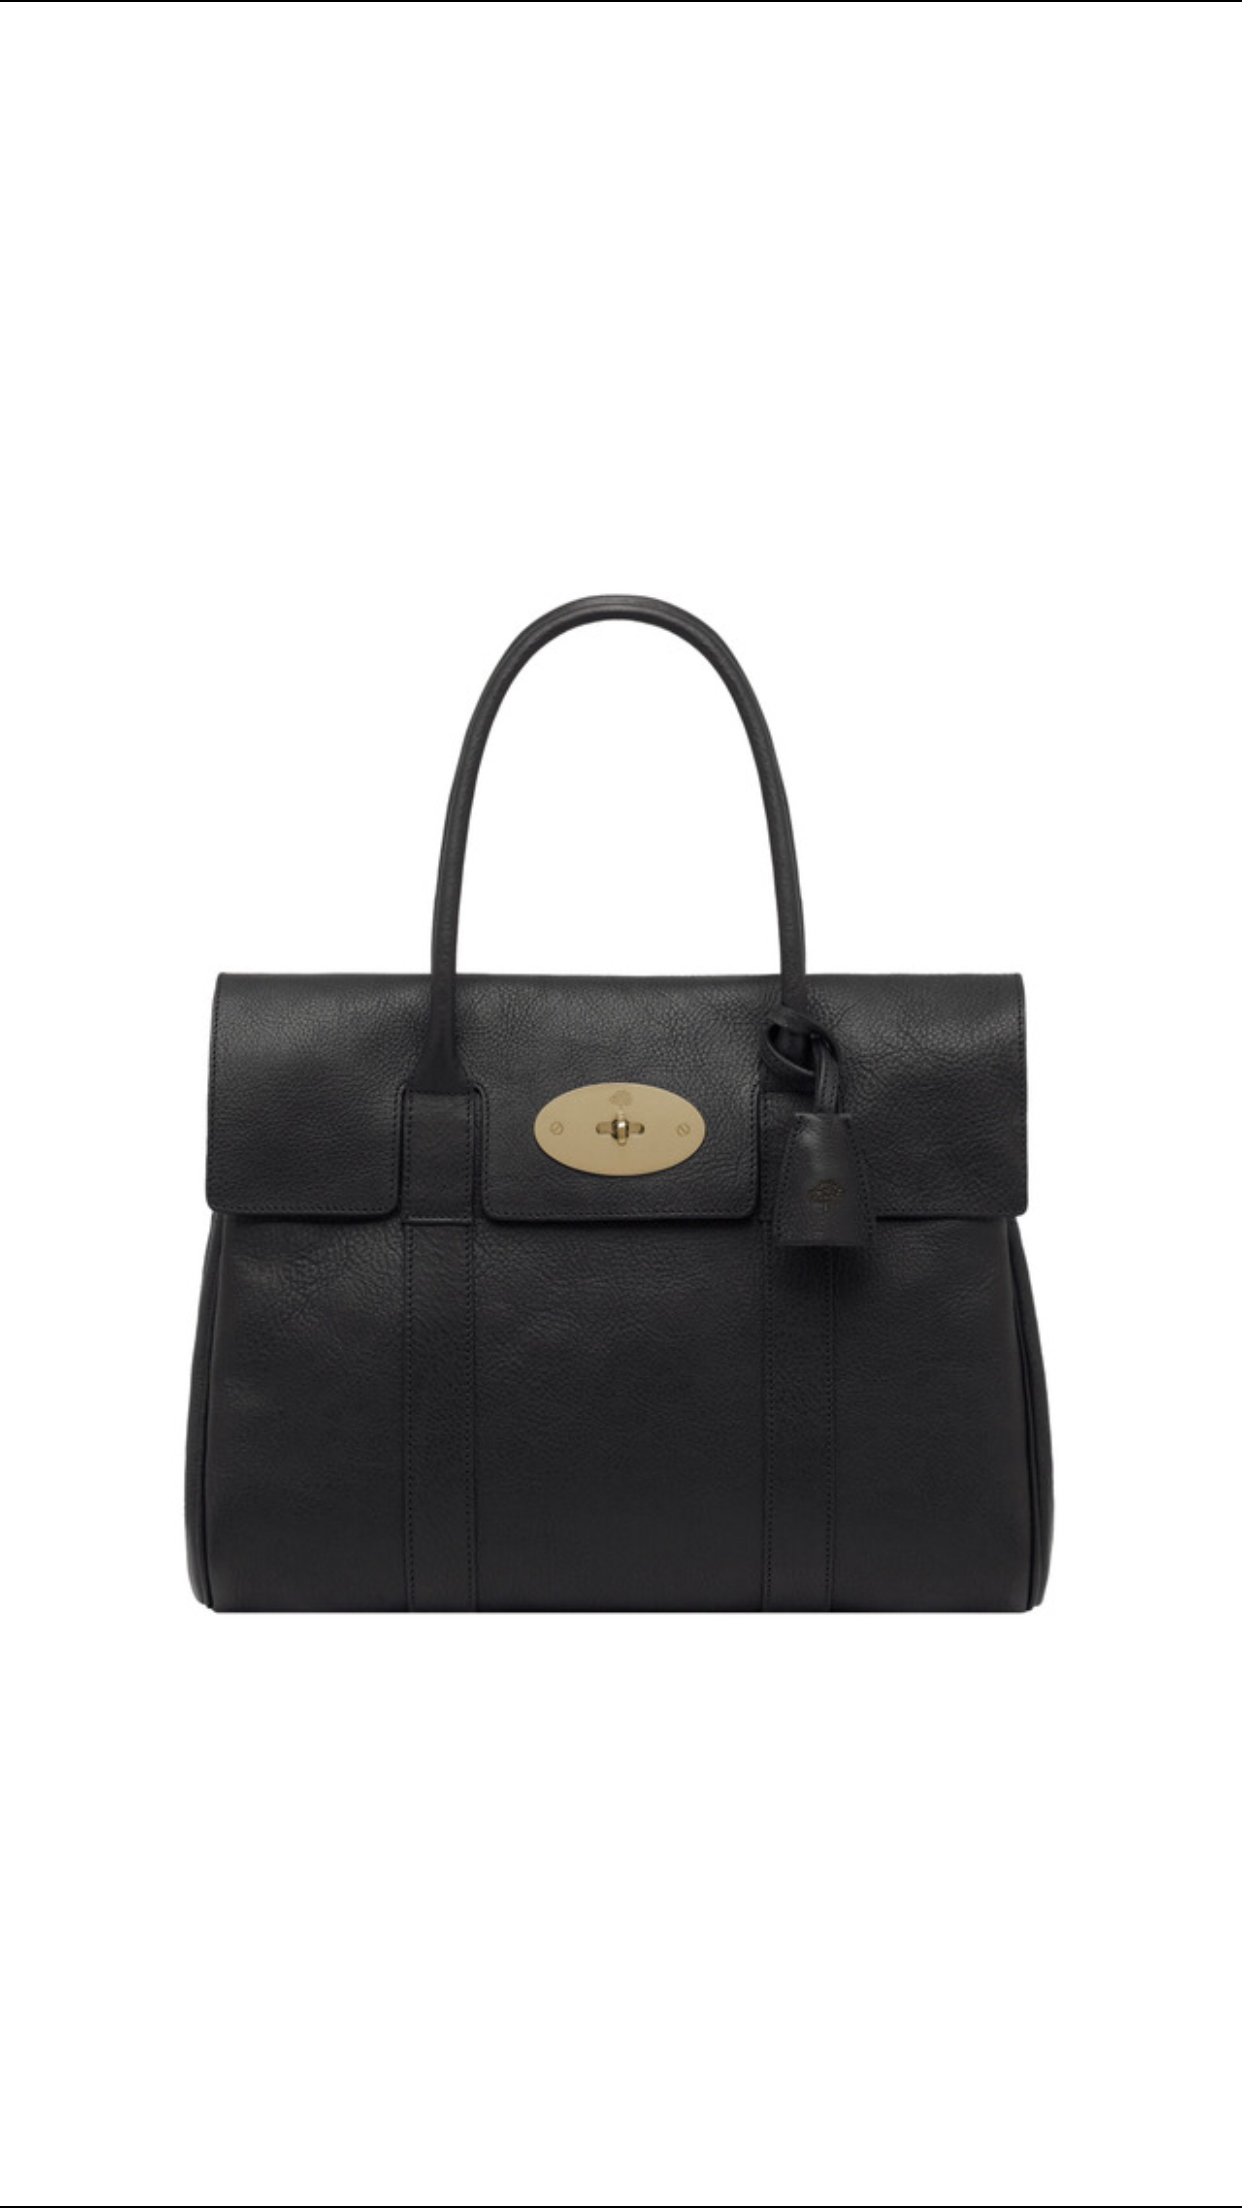 d58adfa2f0 ... hot mulberry pocket bayswater in black natural leather with brass d35c2  11450 ...